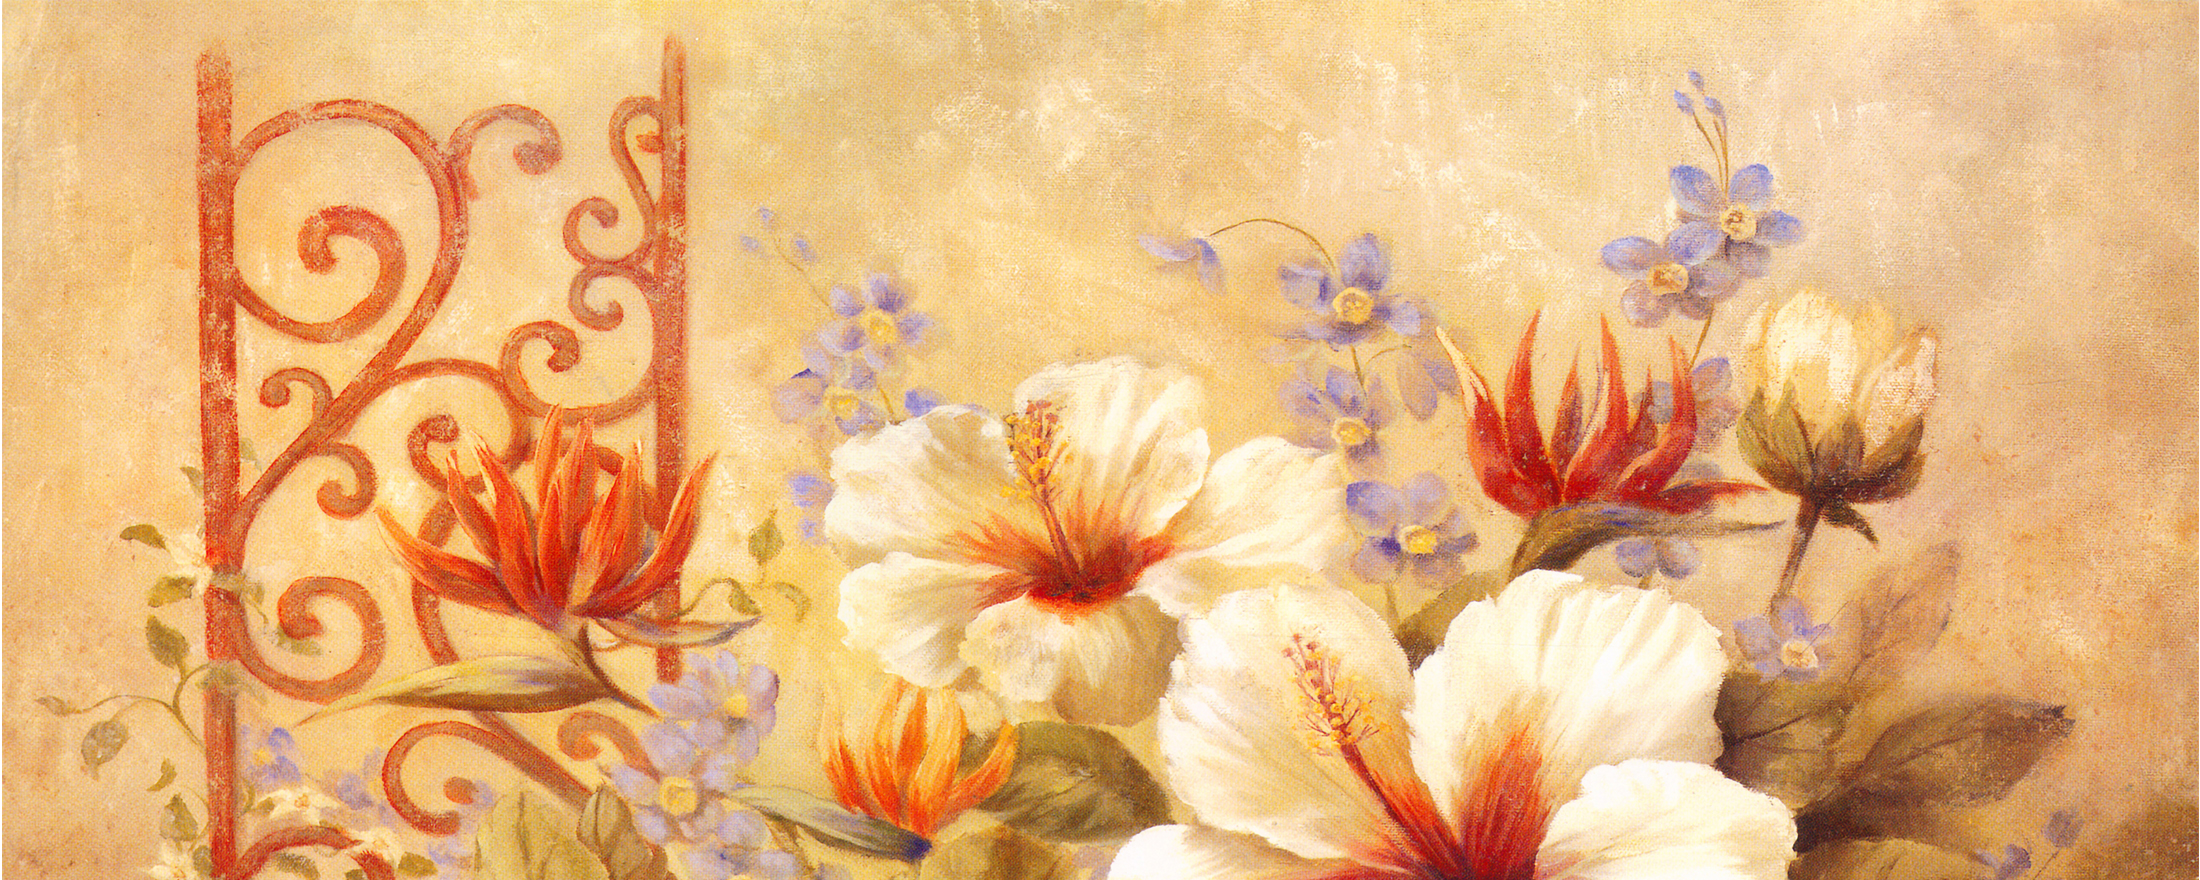 Taobao Station Oil Painting Flower Background Painting Flowers Poster Background Image For